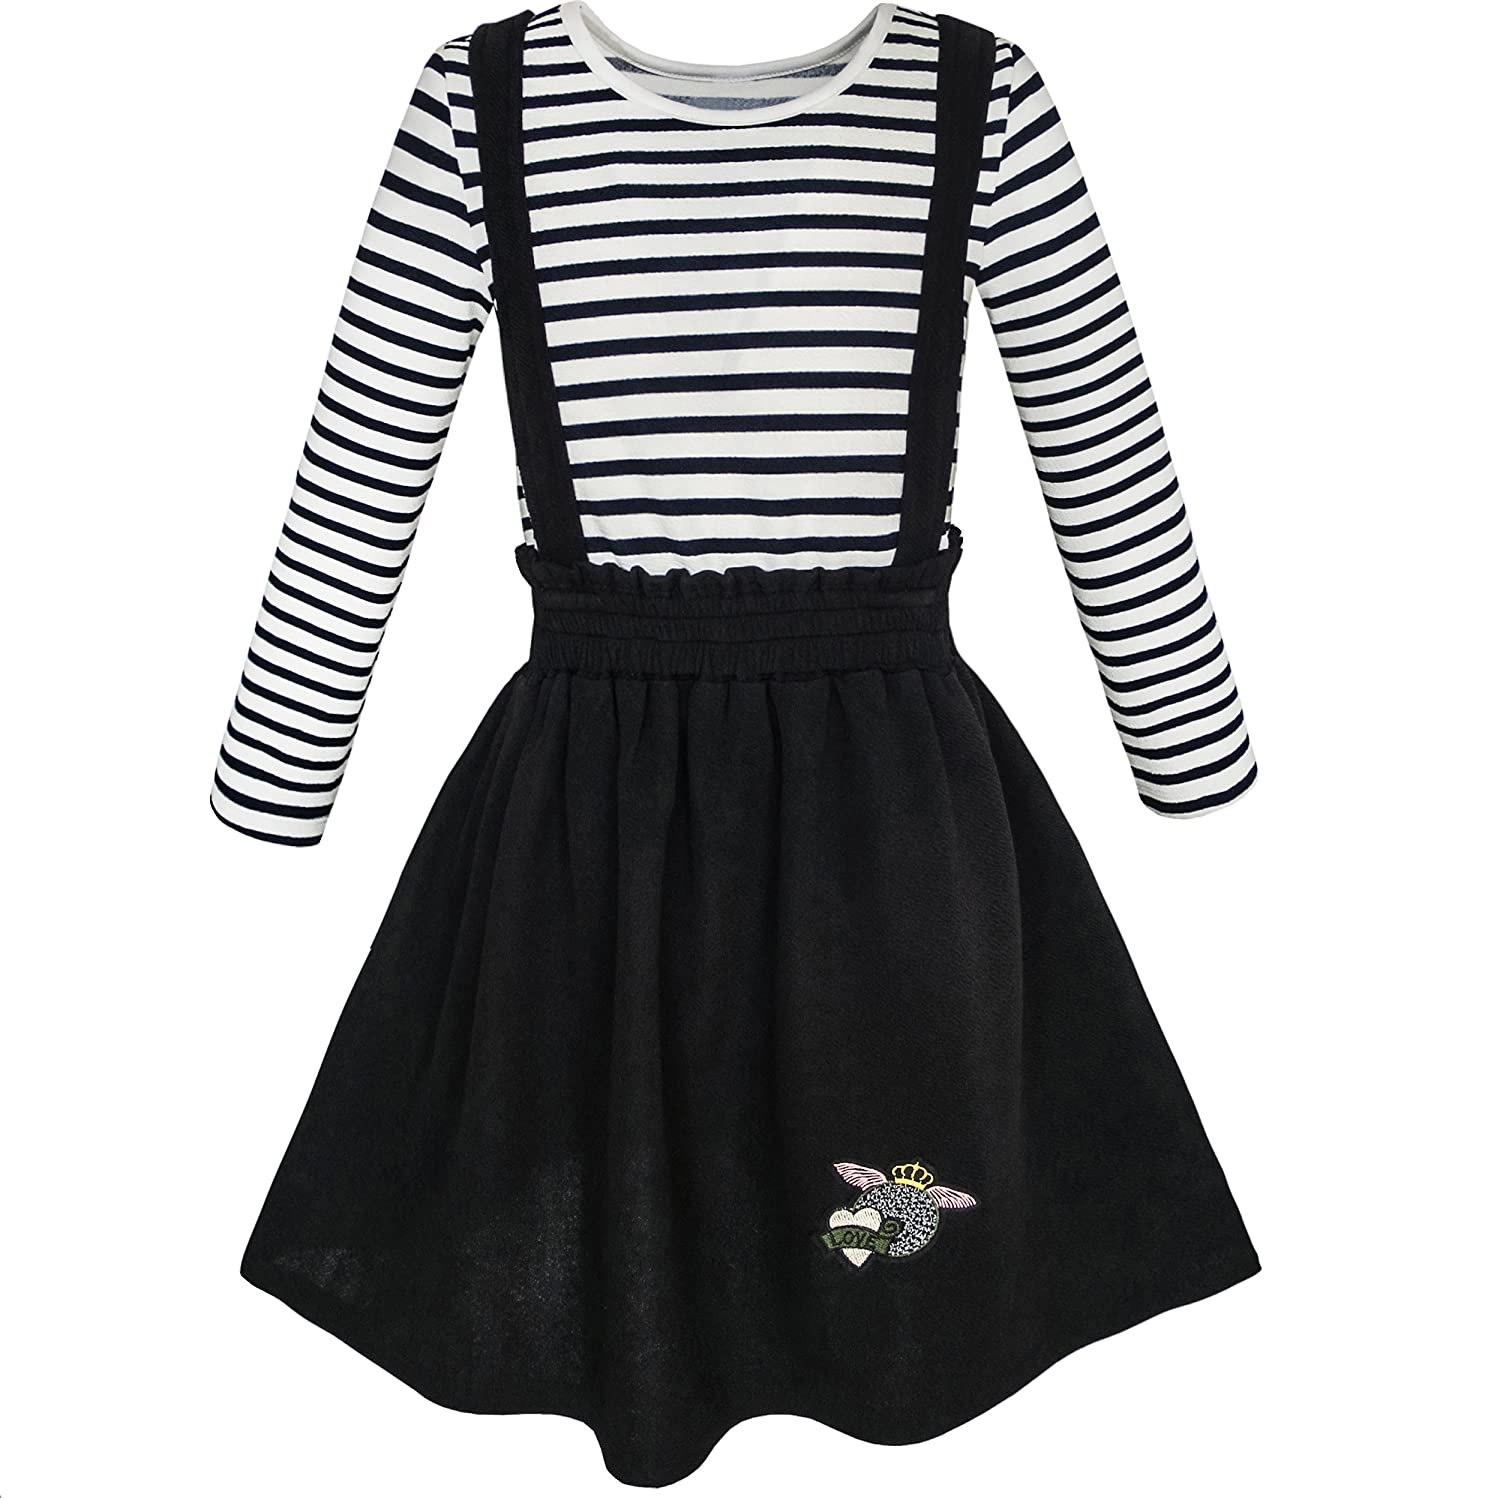 Sunny Fashion 2 Pieces Set Girls Dress T-Shirt Suspender Skirt School Size 4-12